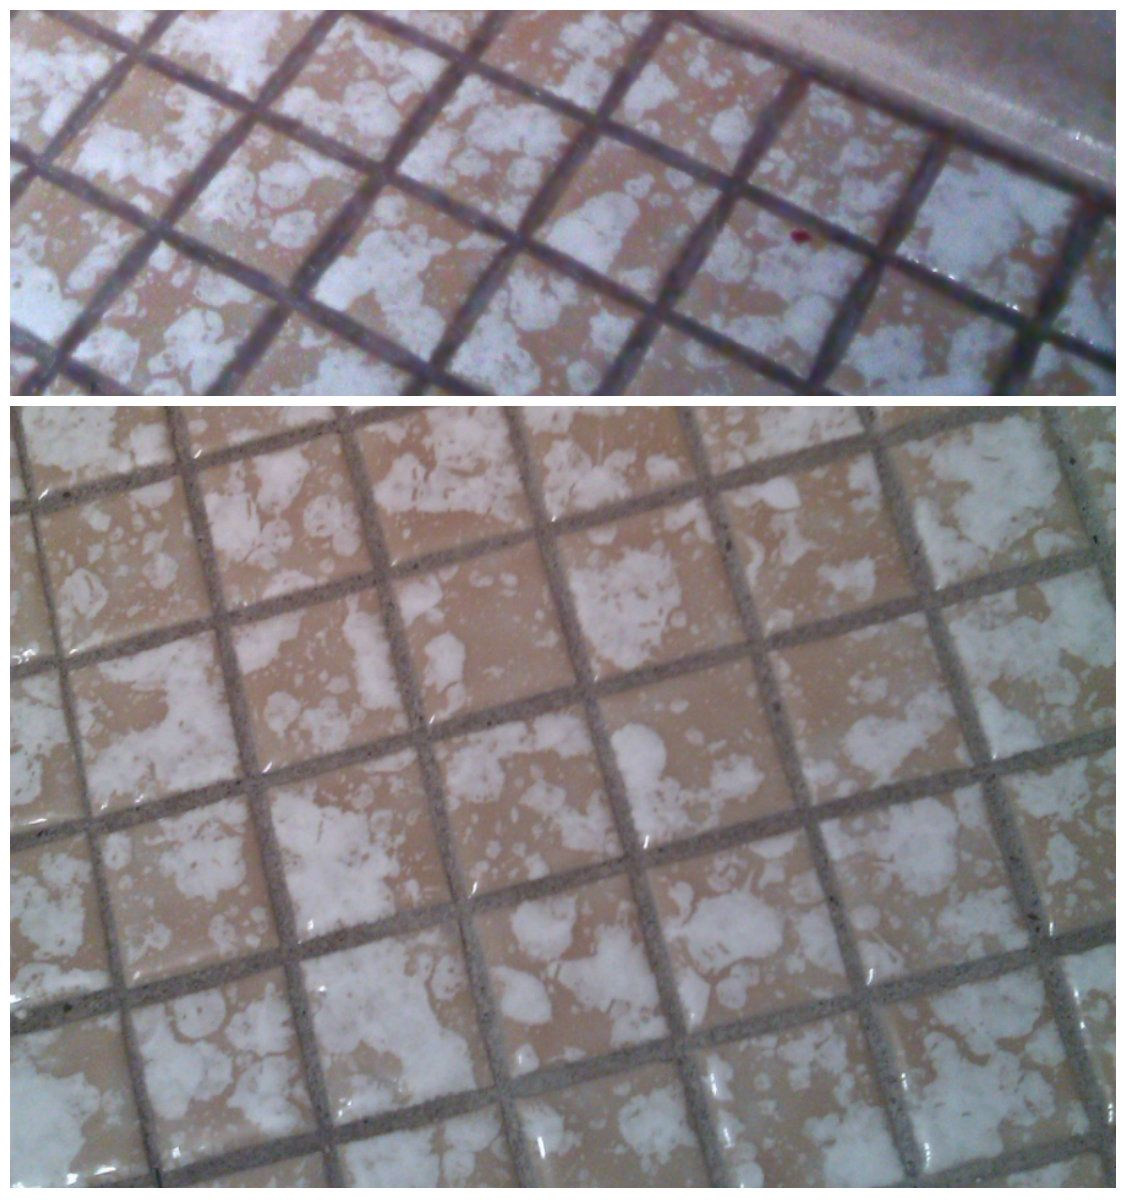 Cleaning Grout On Small Bathroom Tile Floor With Oxiclean.